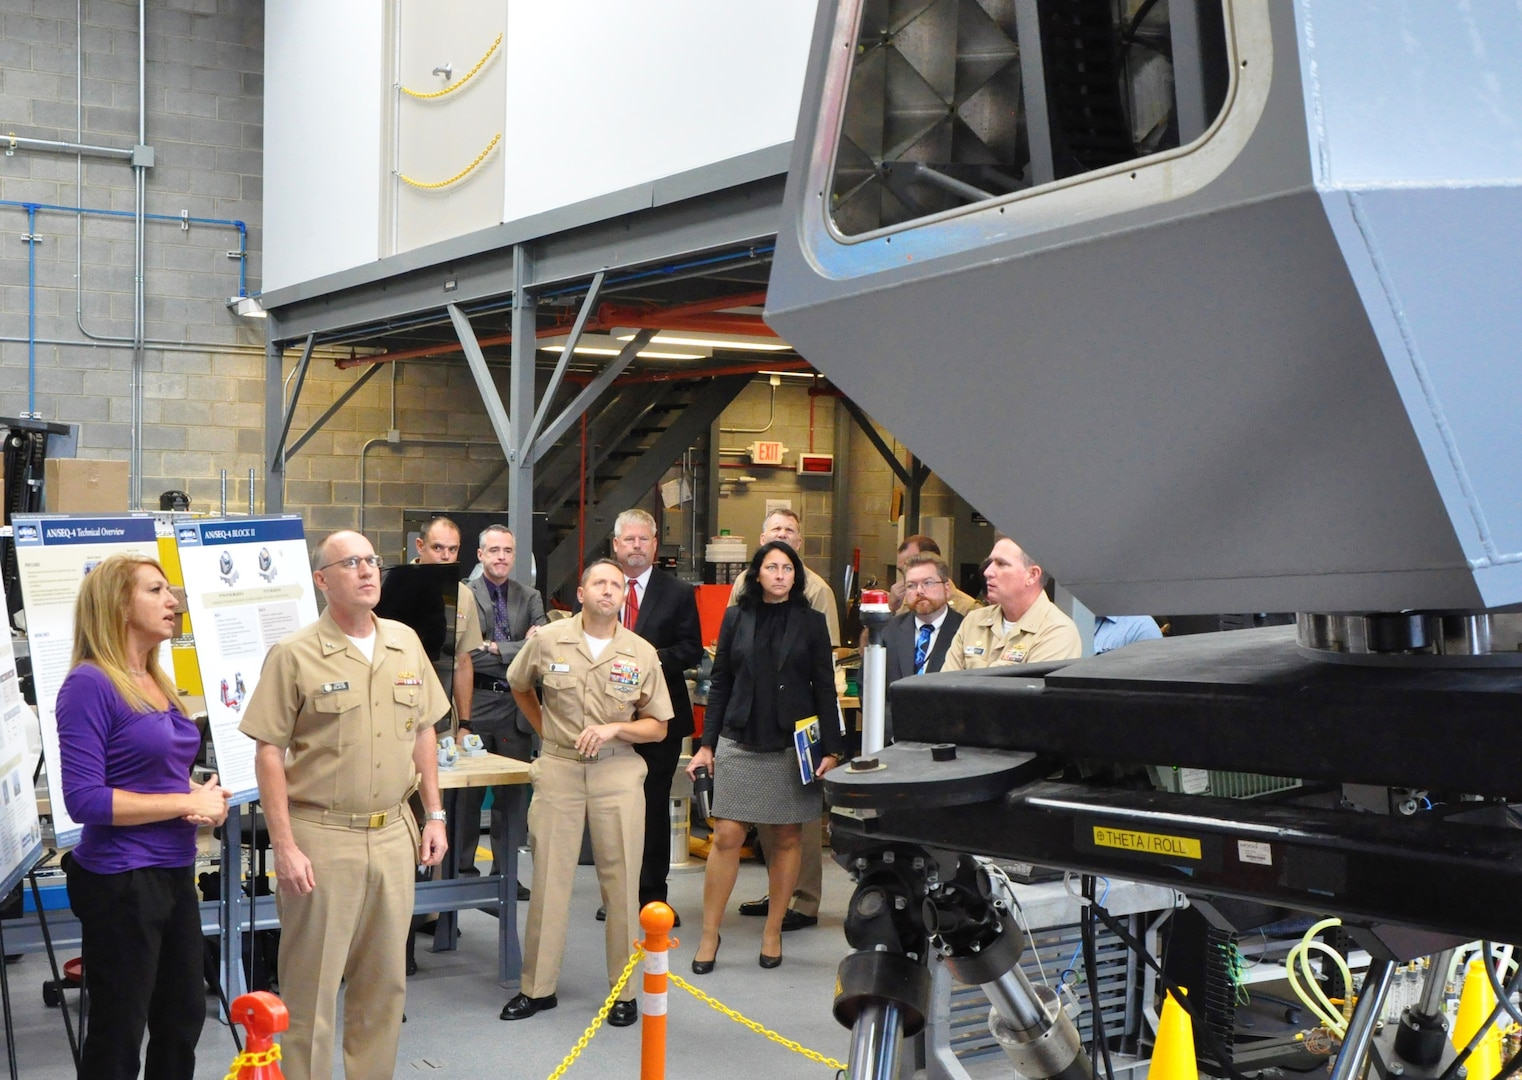 IMAGE: DAHLGREN, Va. (Sept. 6,  2019) - Theresa Gennaro, Naval Surface Warfare Center Dahlgren Division (NSWCDD) senior lead scientist for directed energy programs, briefs Rear Adm. Eugene 'Gene' Black, Surface Warfare Division director at the Office of the Chief of Naval Operations - on the Navy's high energy laser technological programs - including ODIN. The admiral was also updated on HELIOS -- High Energy Laser with Integrated Optical-Dazzler and Surveillance - during his NSWCDD tour. Gennaro was among the command's technical leaders and subject matter experts who briefed the admiral on a wide range of technologies encompassing modeling and simulation; guns and guided projectiles; Combined Integrated Air and Missile Defense Anti-Submarine Warfare; and virtualization. (U.S. Navy photo/Released)